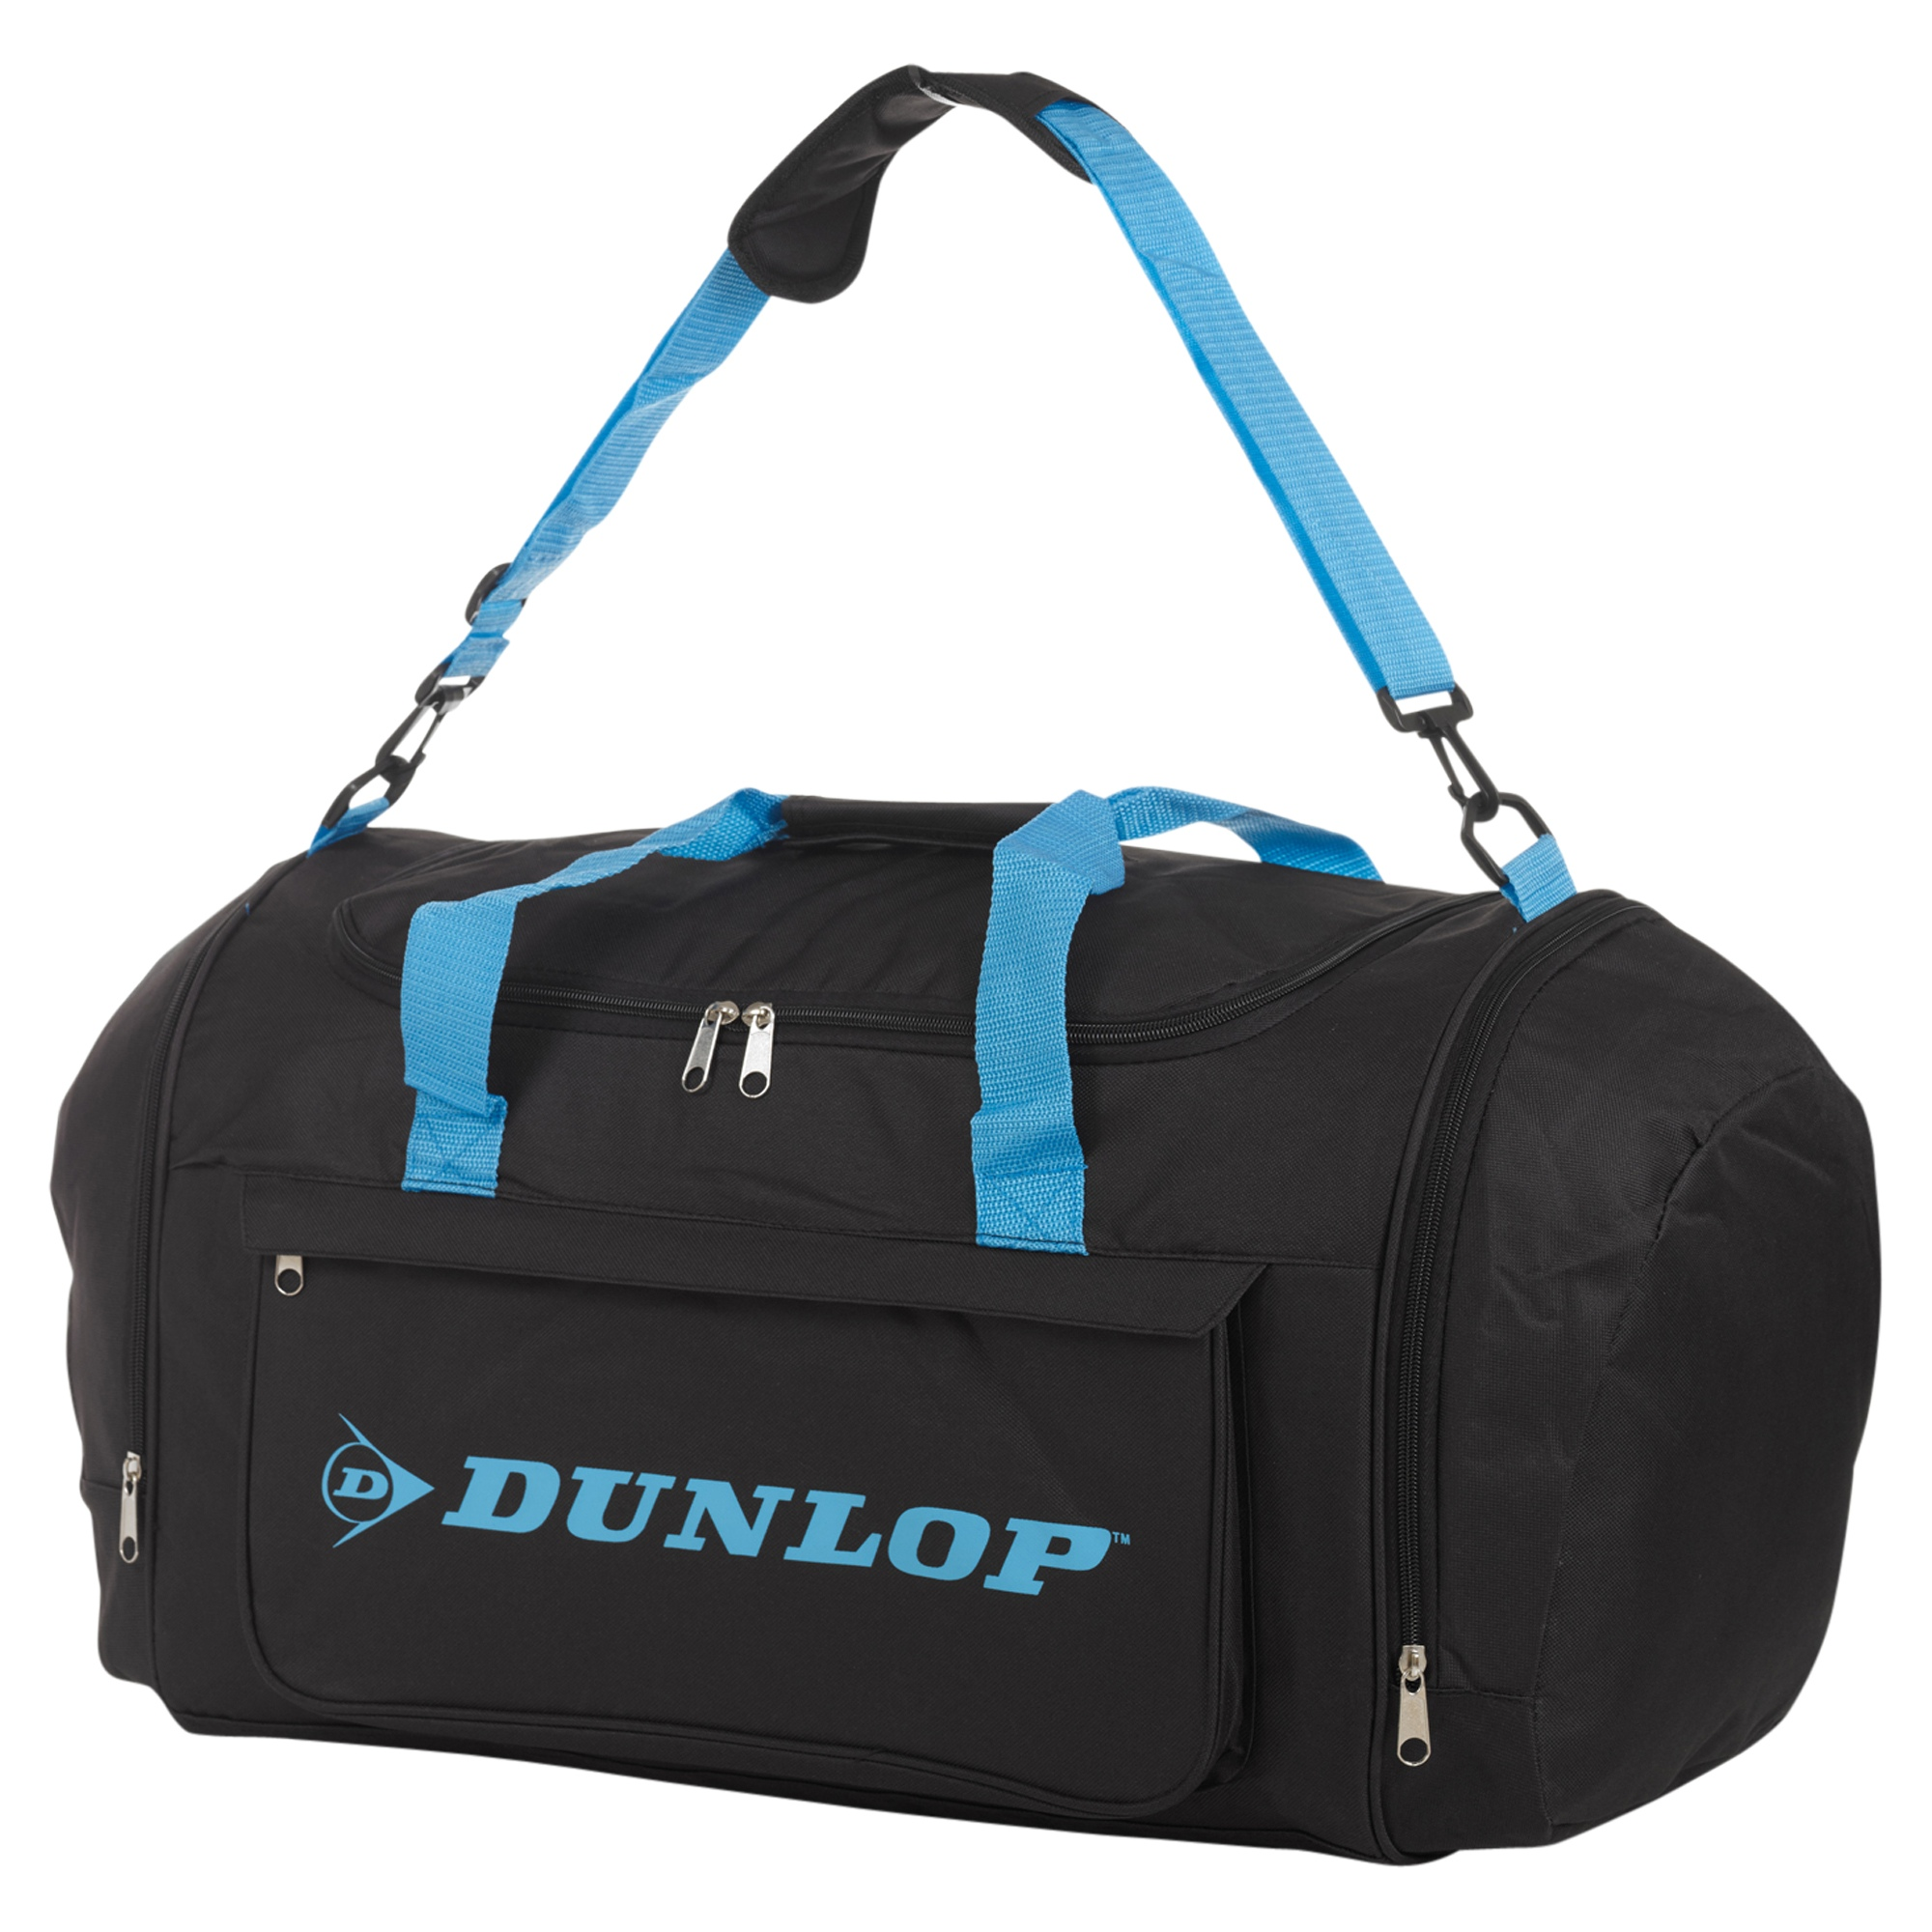 Dunlop Travel Bag